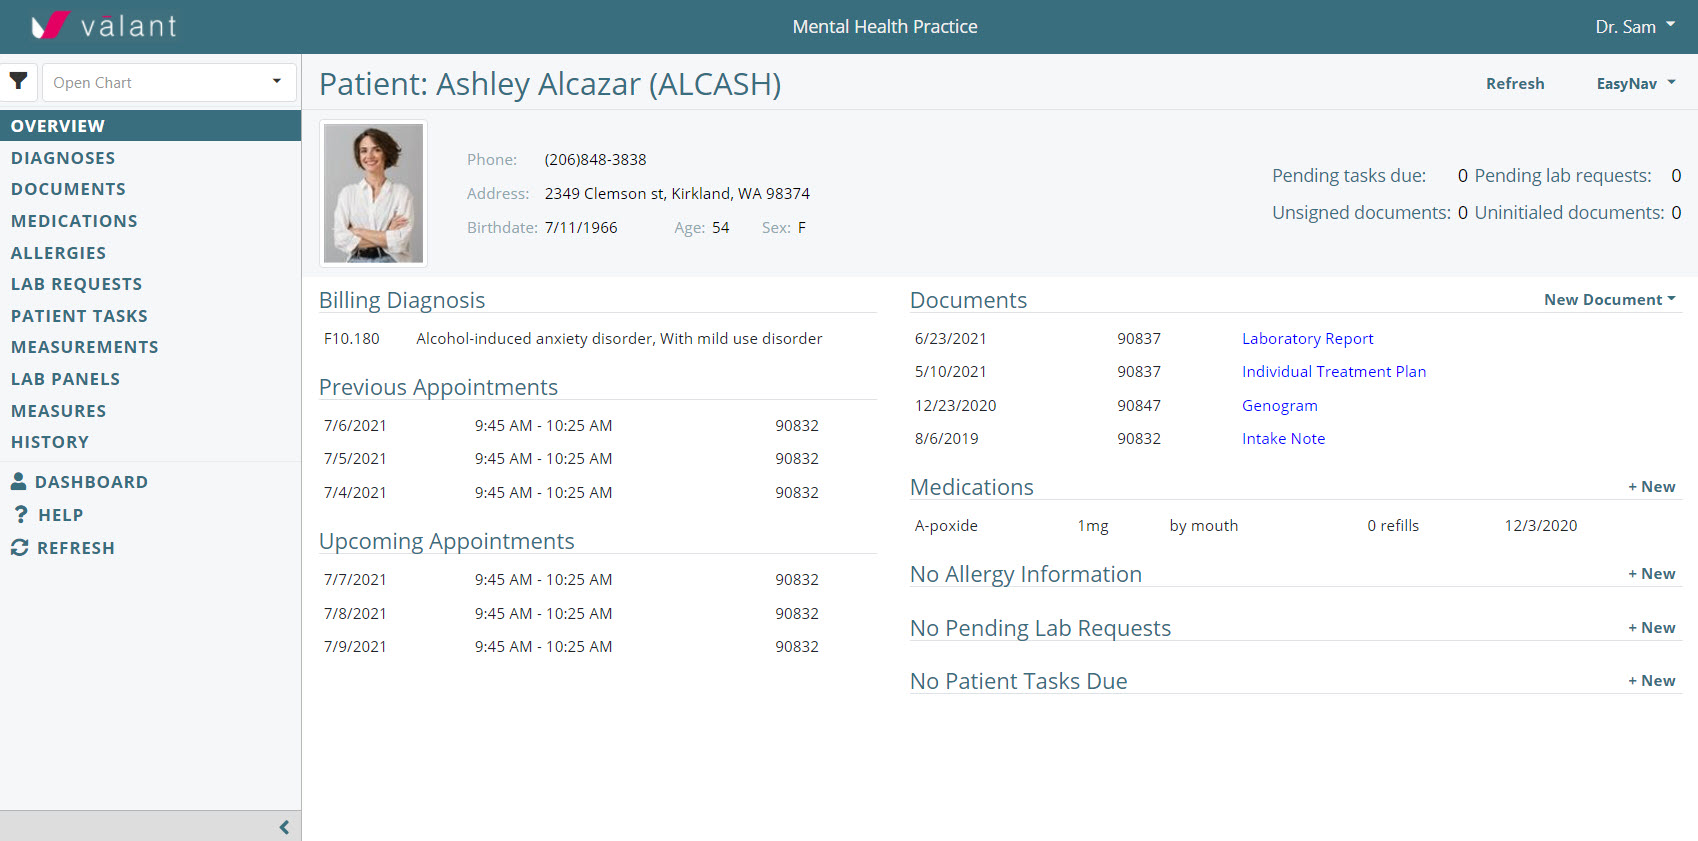 Get all the pertinent patient information in one screen, including demographic data, billing information, previous and upcoming appointments, medication, lab,  and allergy information, and more.